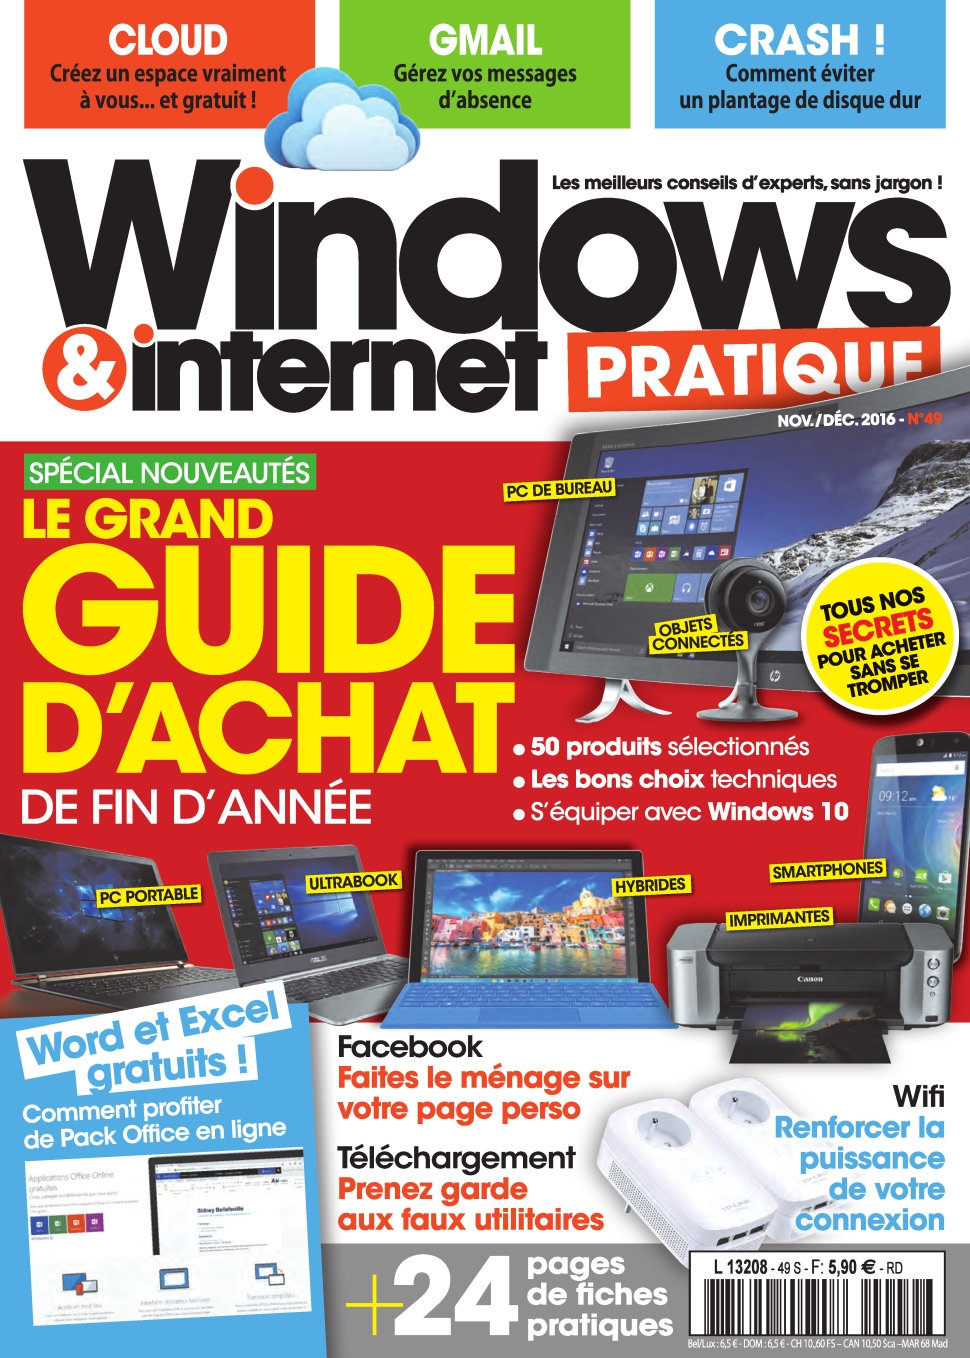 Windows & Internet Pratique N°49 - Novembre/Décembre 2016